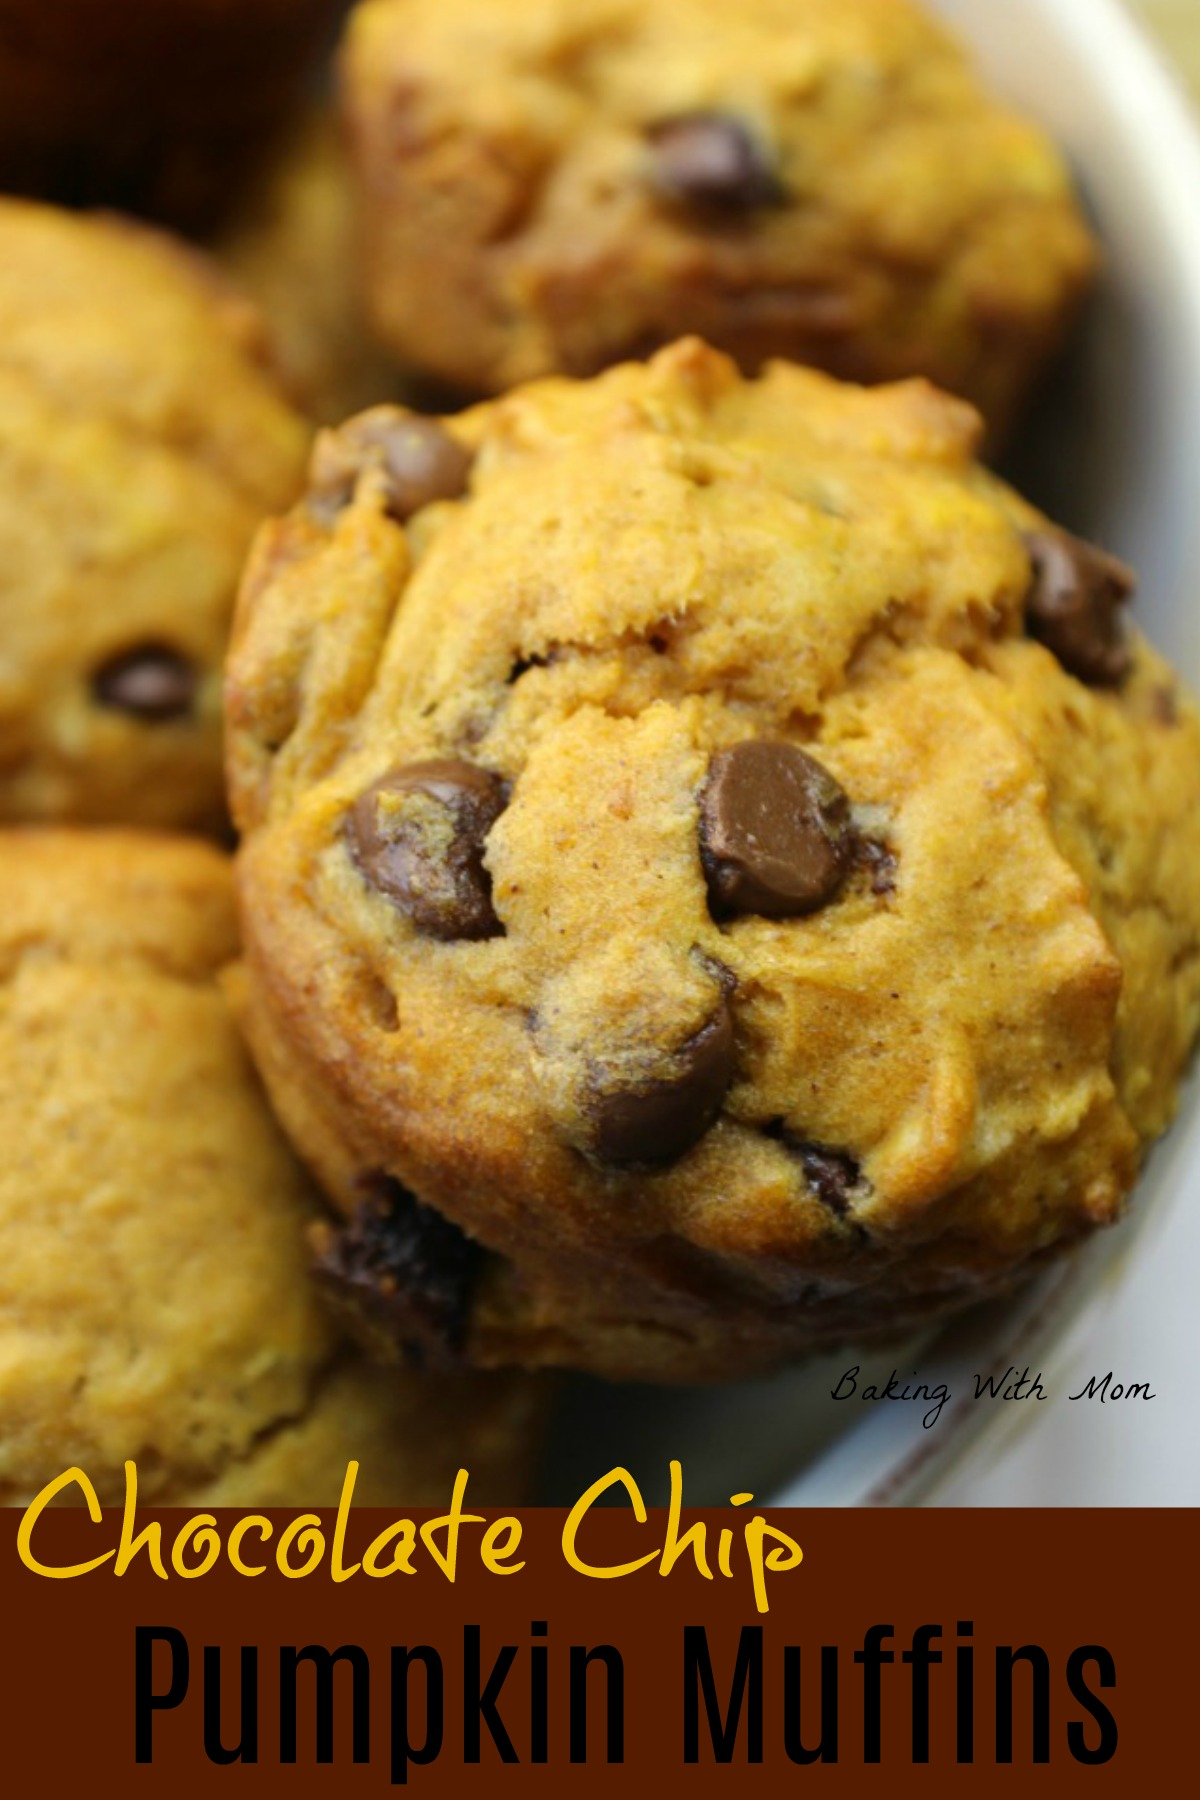 Chocolate chip pumpkin muffins in a white bowl